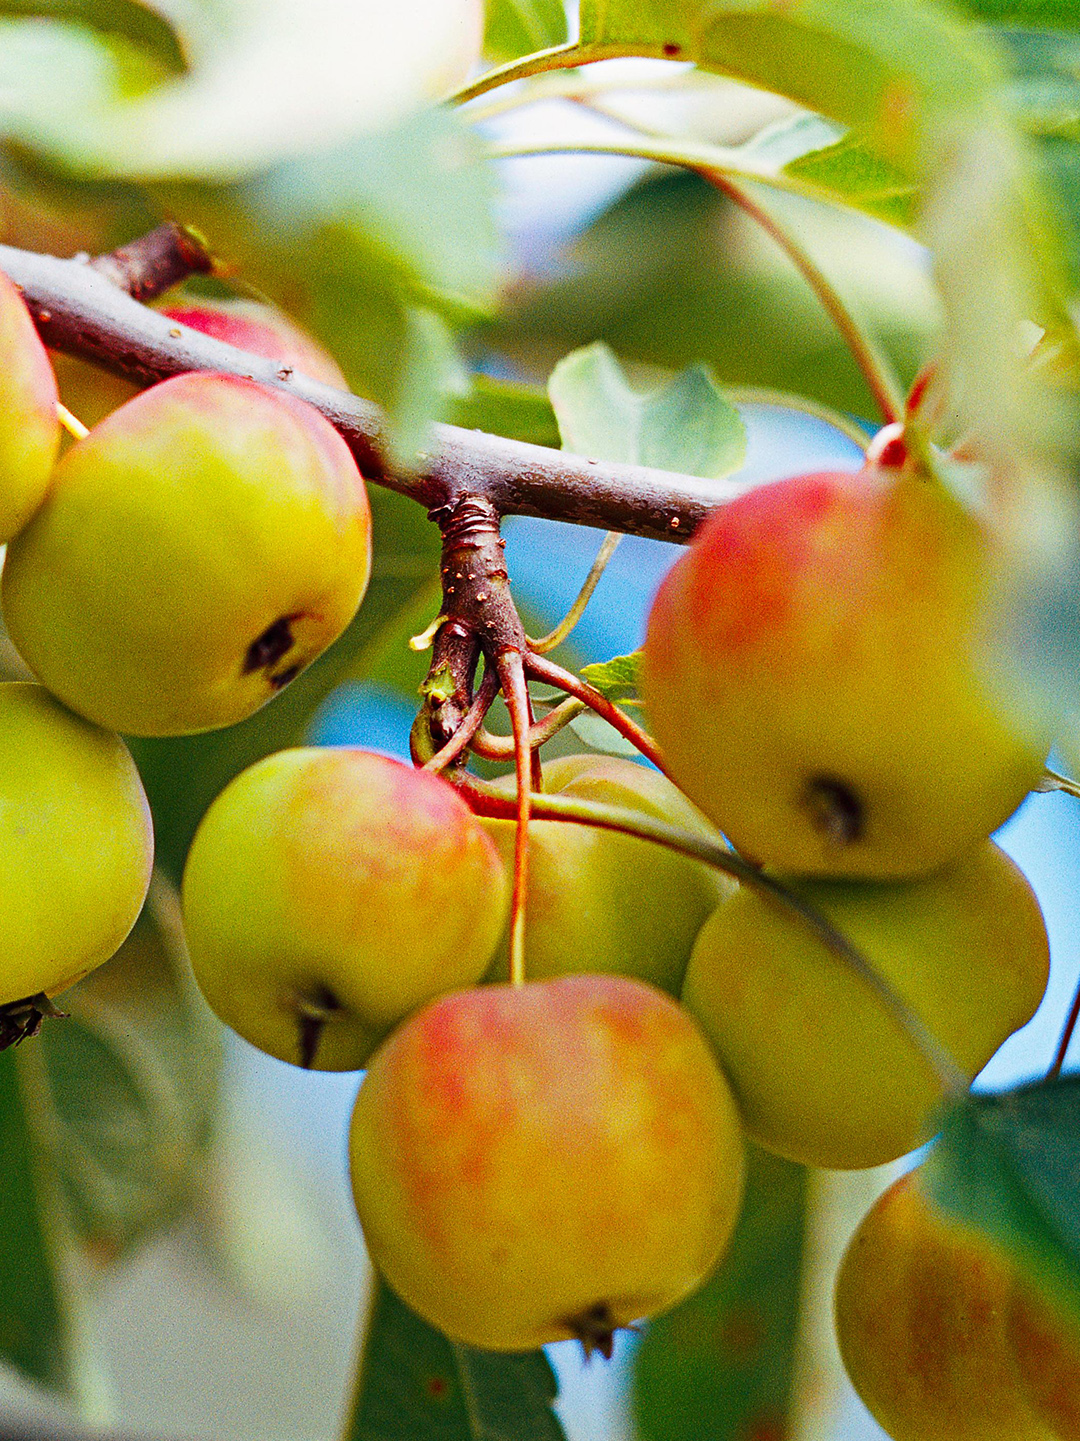 Ralph Shay crabapple fruits growing in bunch on tree